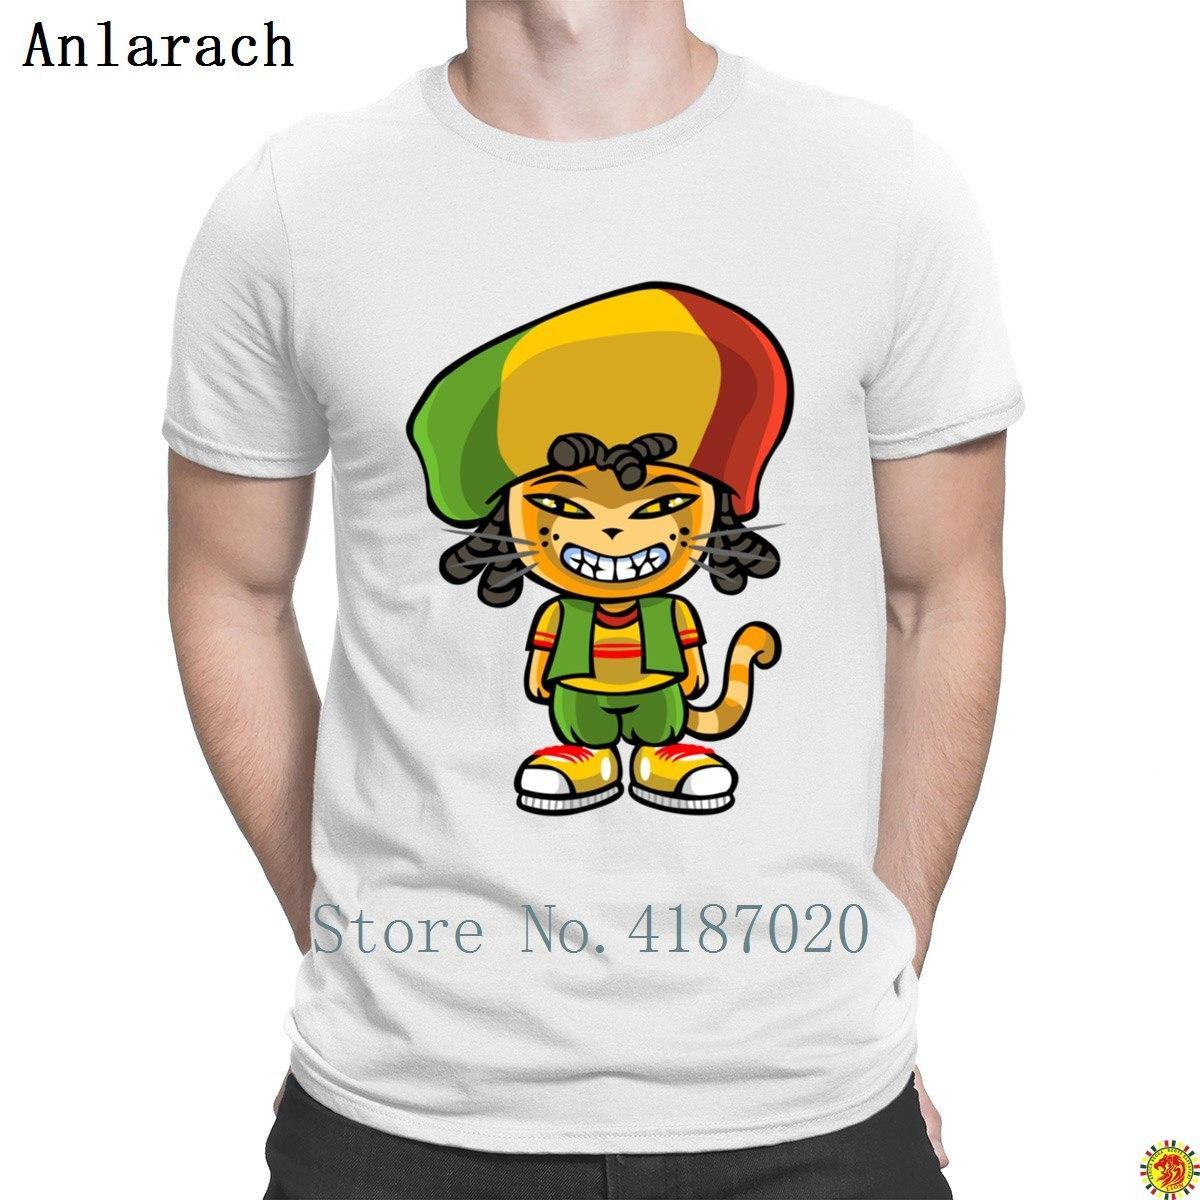 fab8e8df Reggae Cat T Shirts Websites Spring Cool Tops Men'S Tshirt Cotton Nice  Cheap Sale Anlarach Personality Cool T Shirt Online T Shirt 24 Hours From  Dzupright, ...